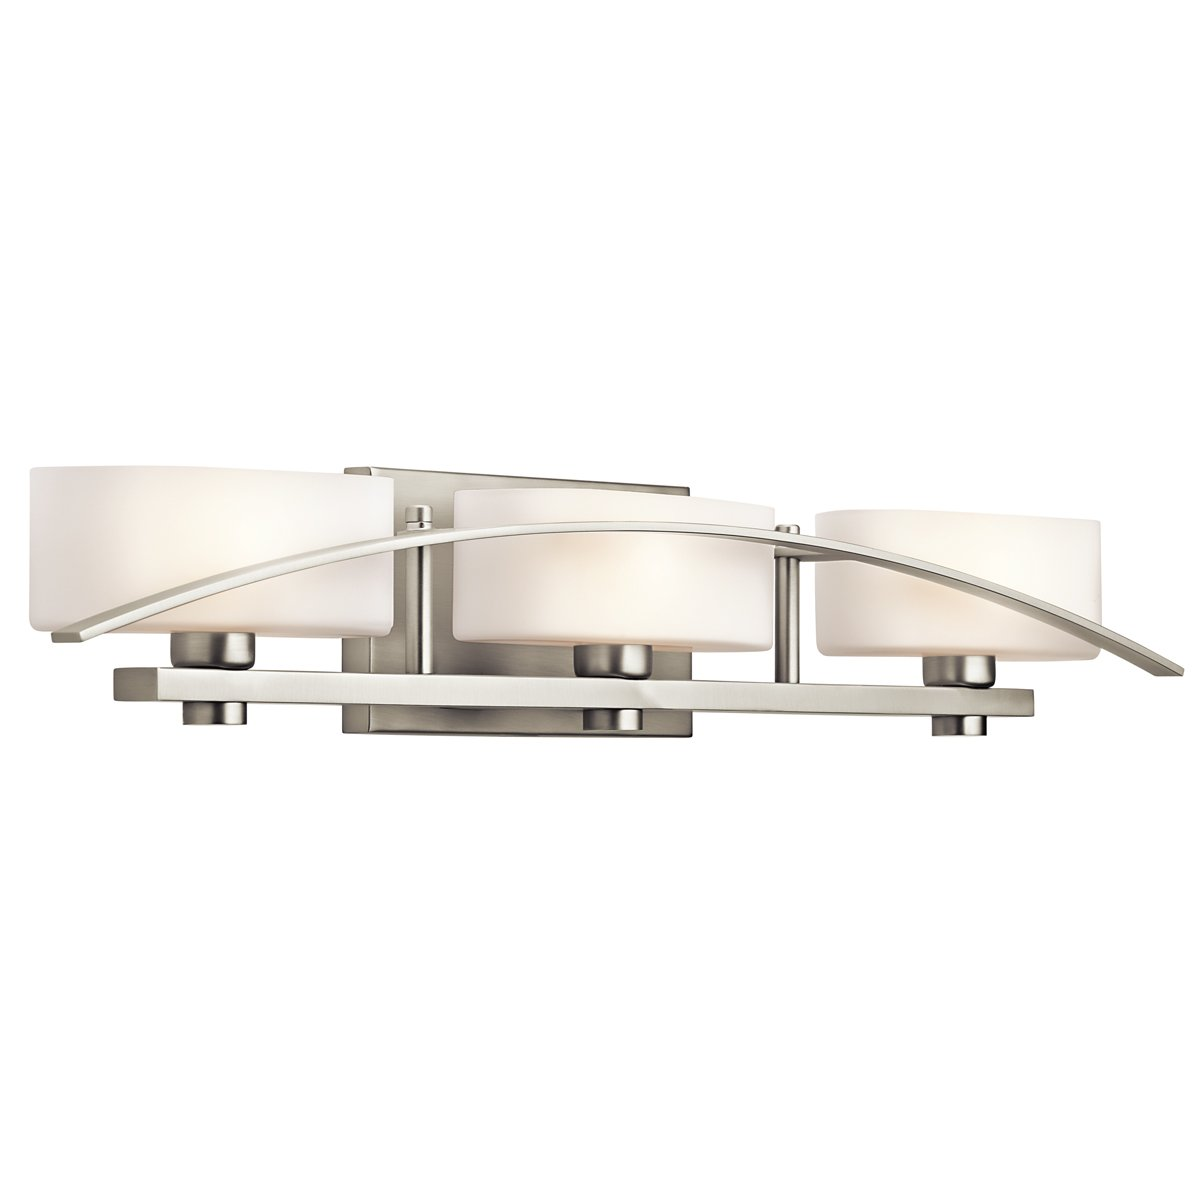 Kichler Lighting 45317NI Suspension 3Light Vanity Fixture